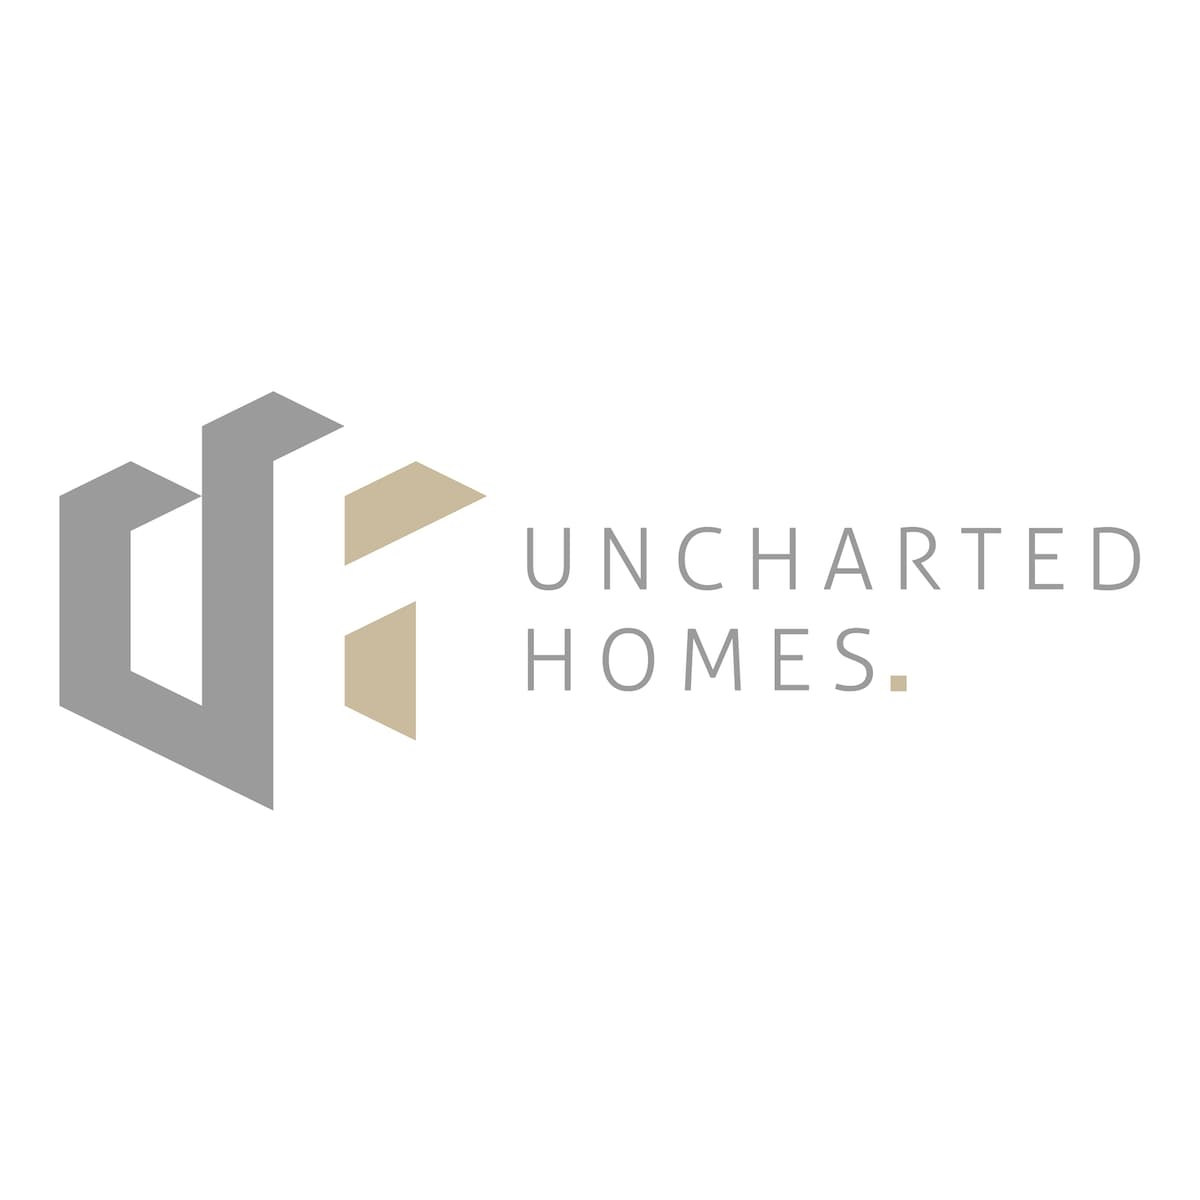 Uncharted Homes from Singapore